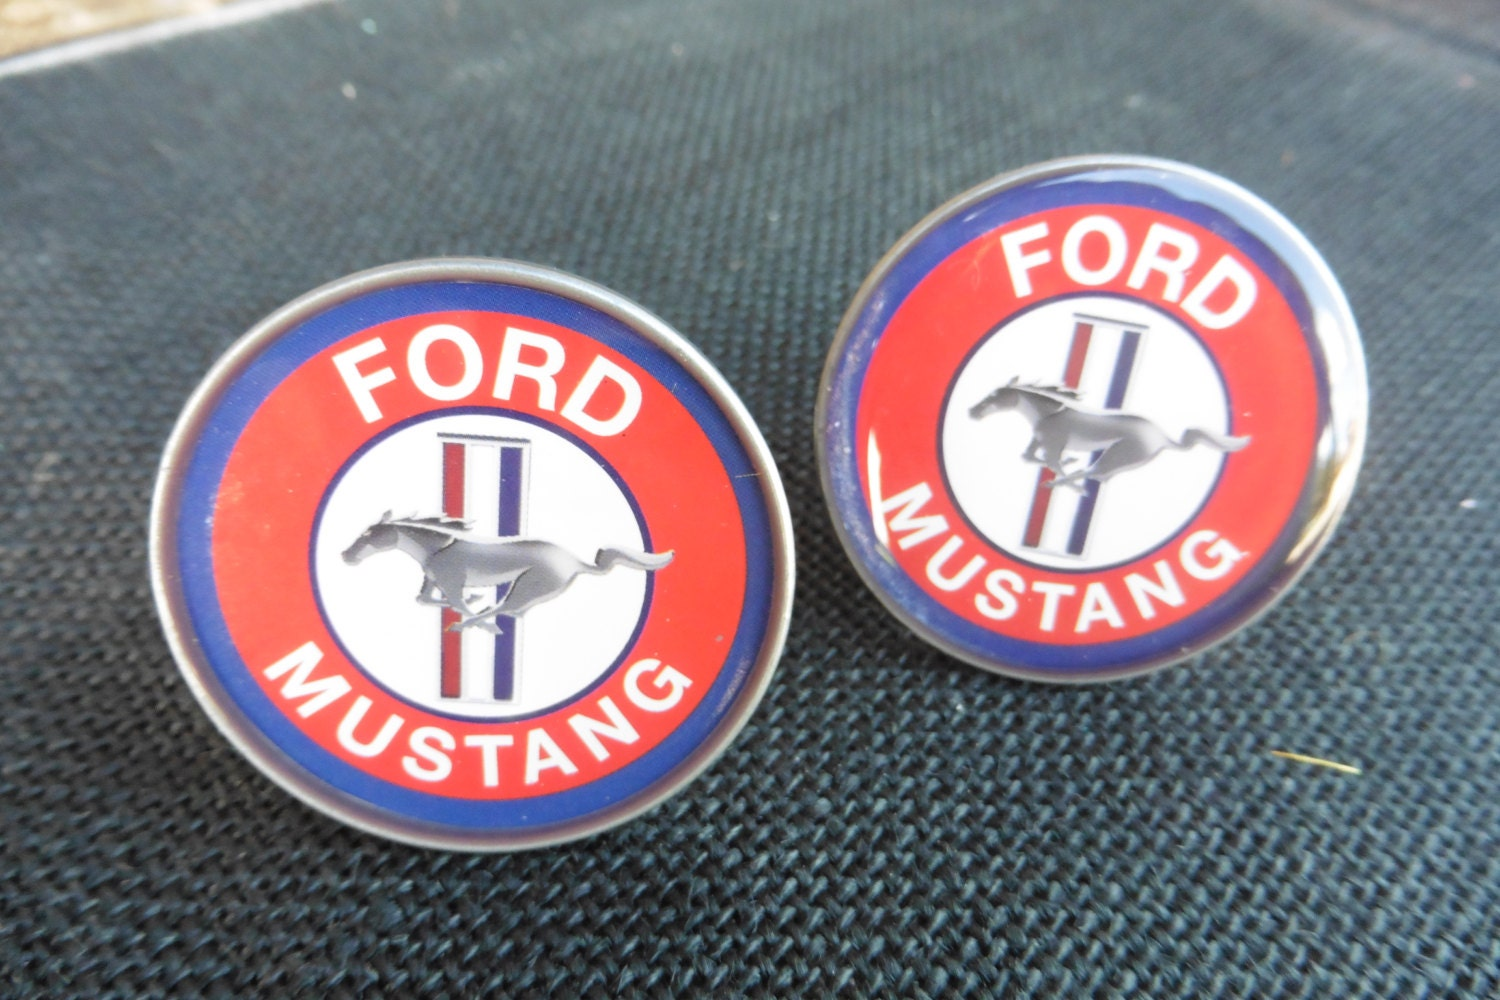 Ford Mustang Logo Red Blue White Automotive Car Auto